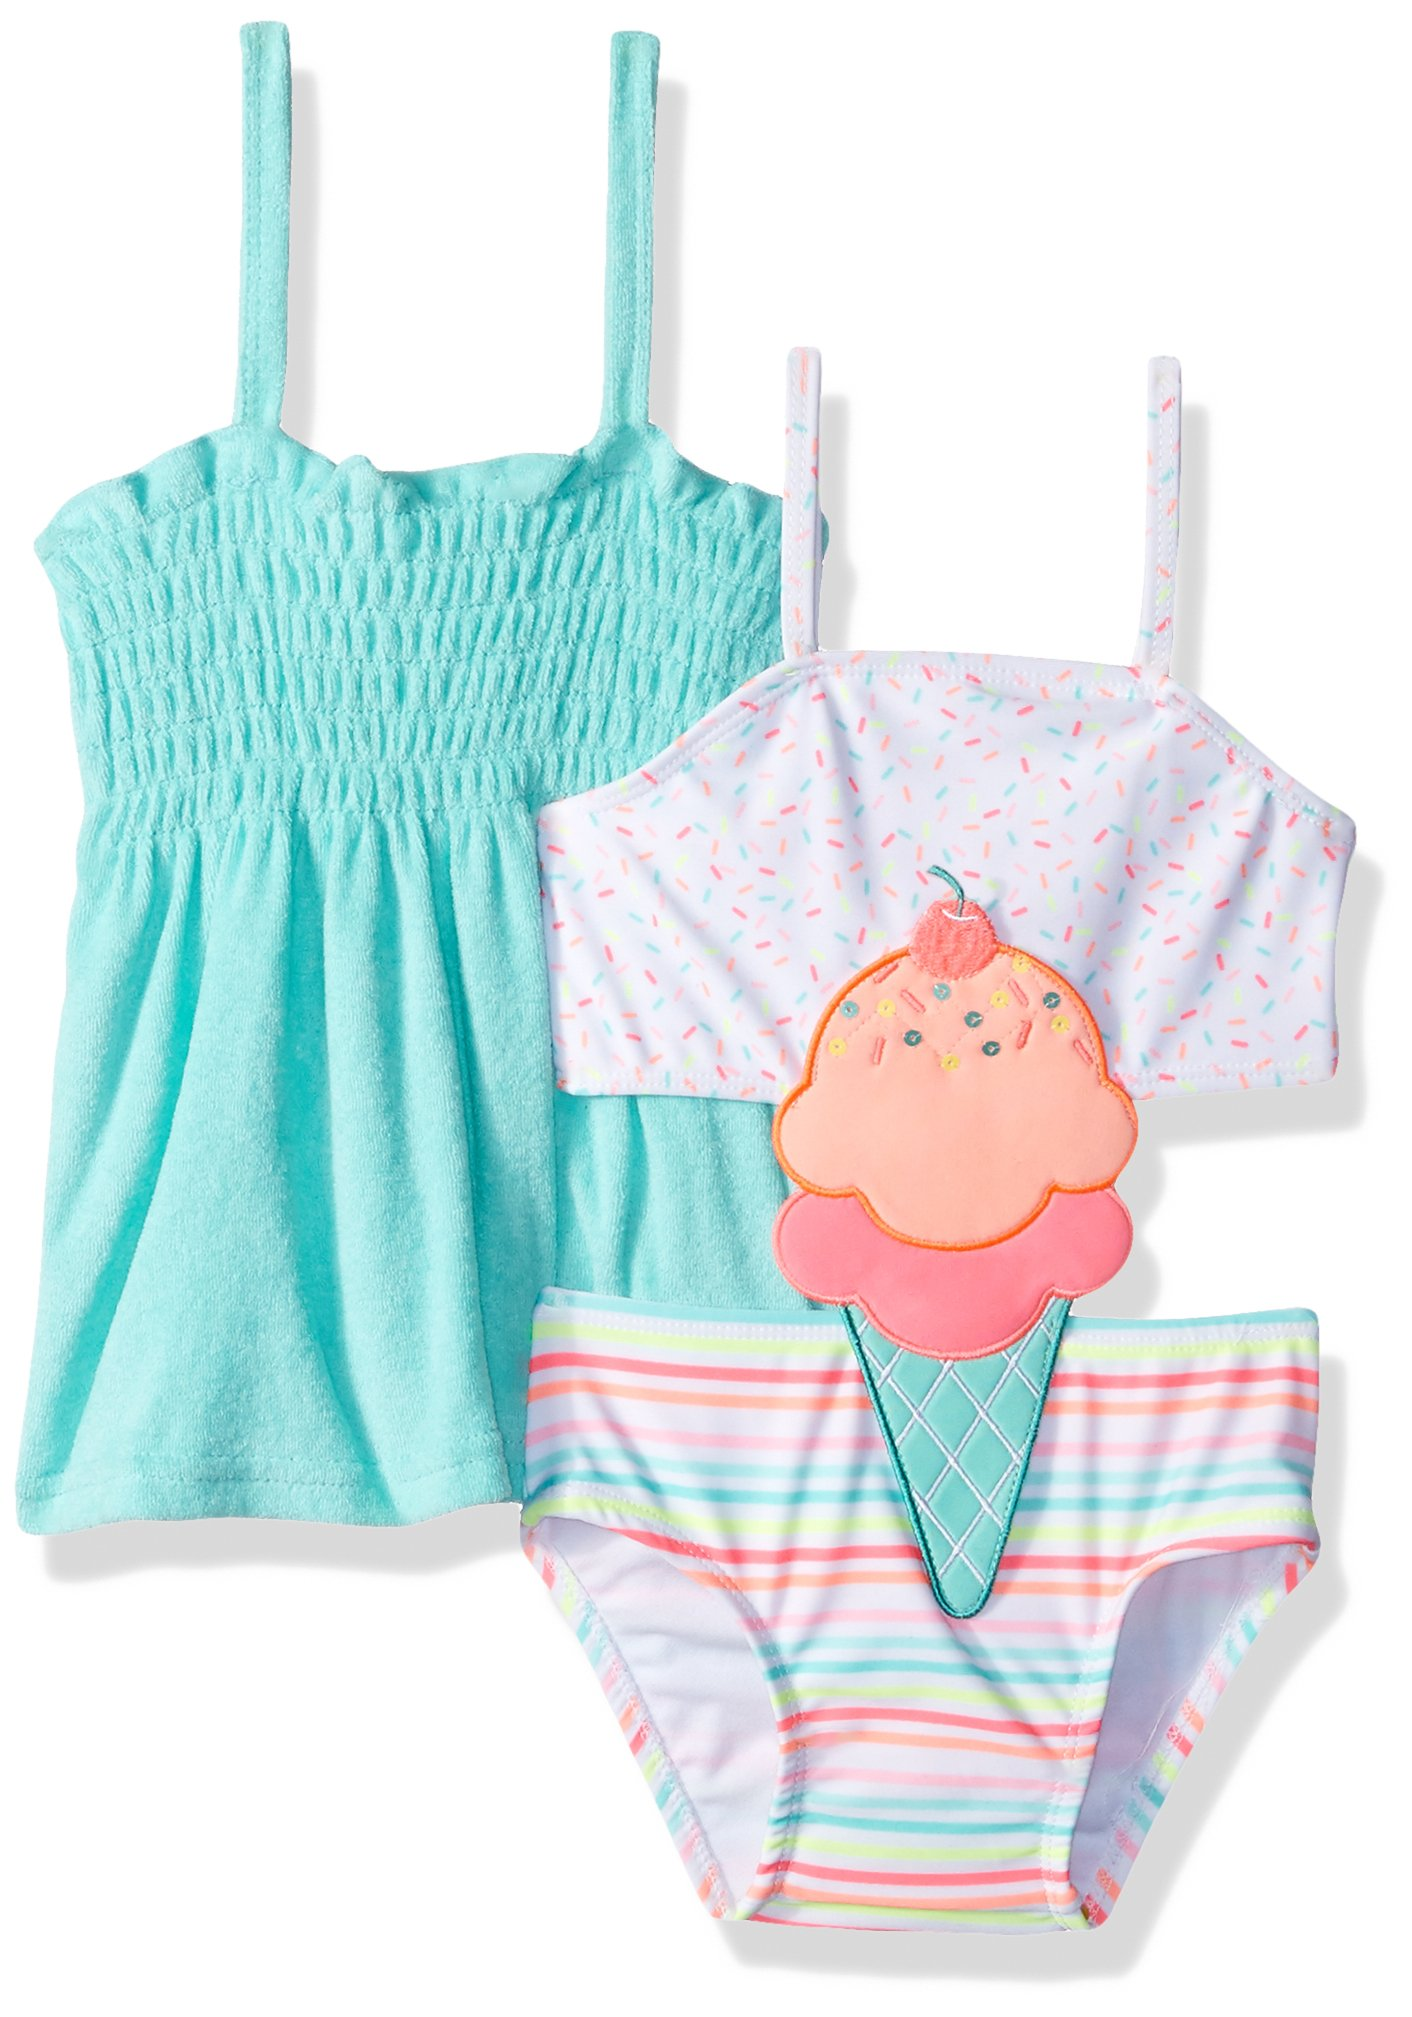 Baby Buns Girls' Toddler One Piece I Screem! Connector Swimsuit Set with Cover Up, Multi, 2T